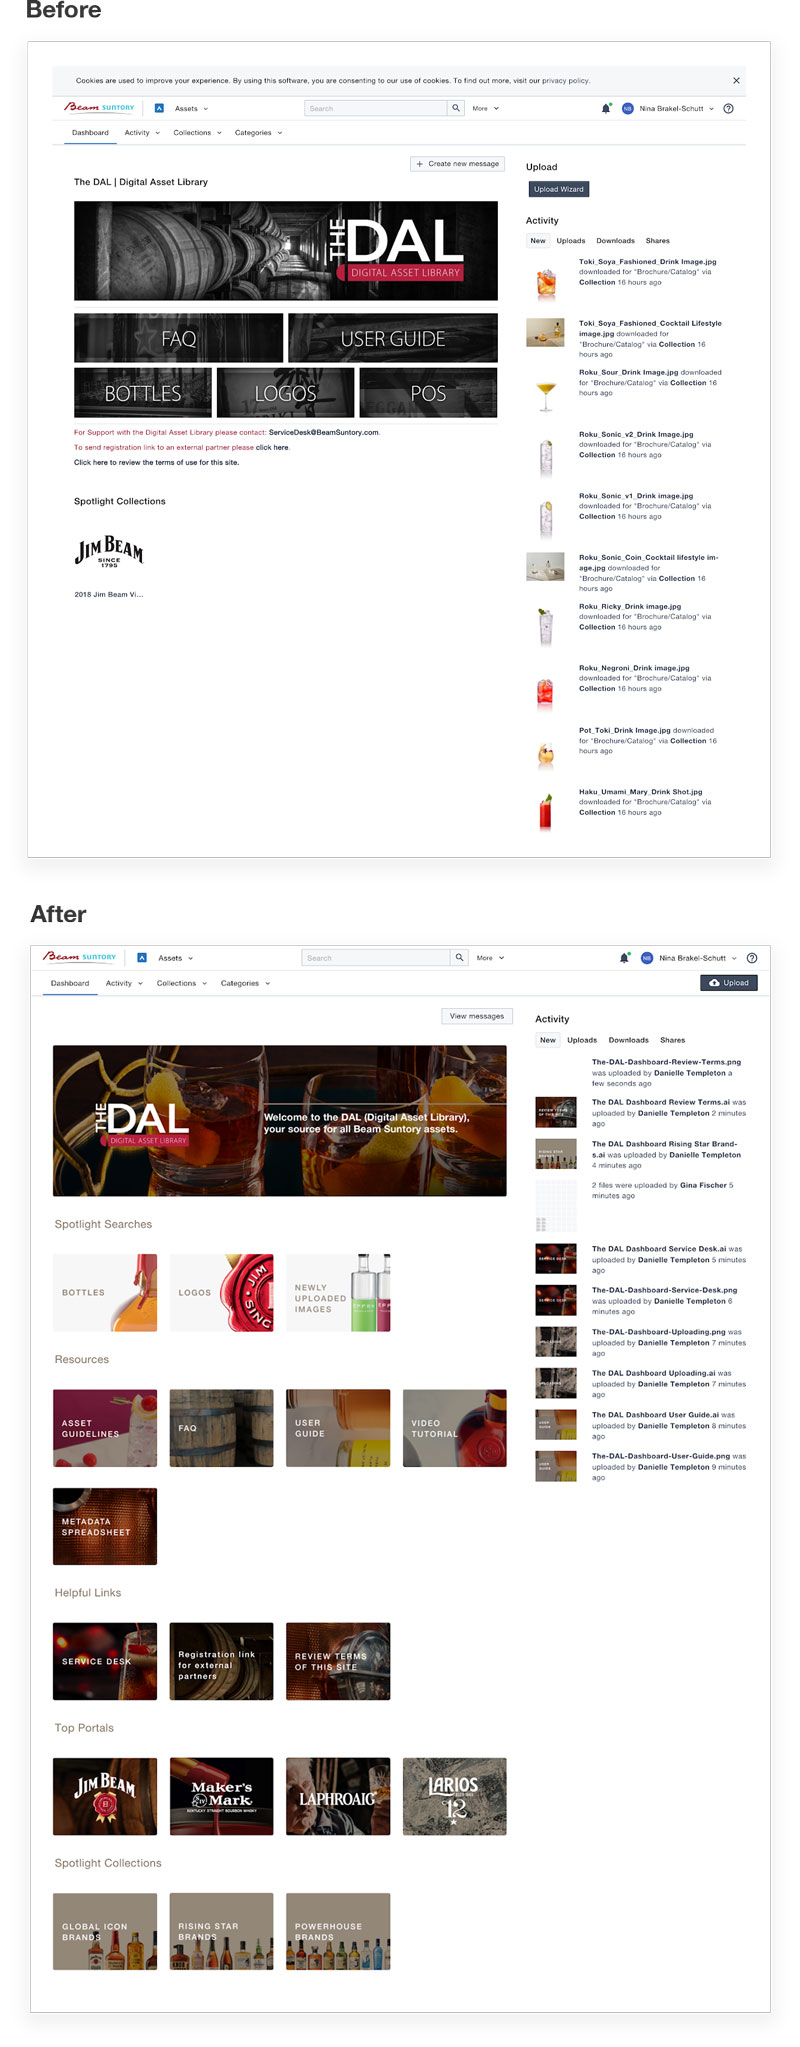 Beam Suntory, The DAL Dashboard Design Before and After